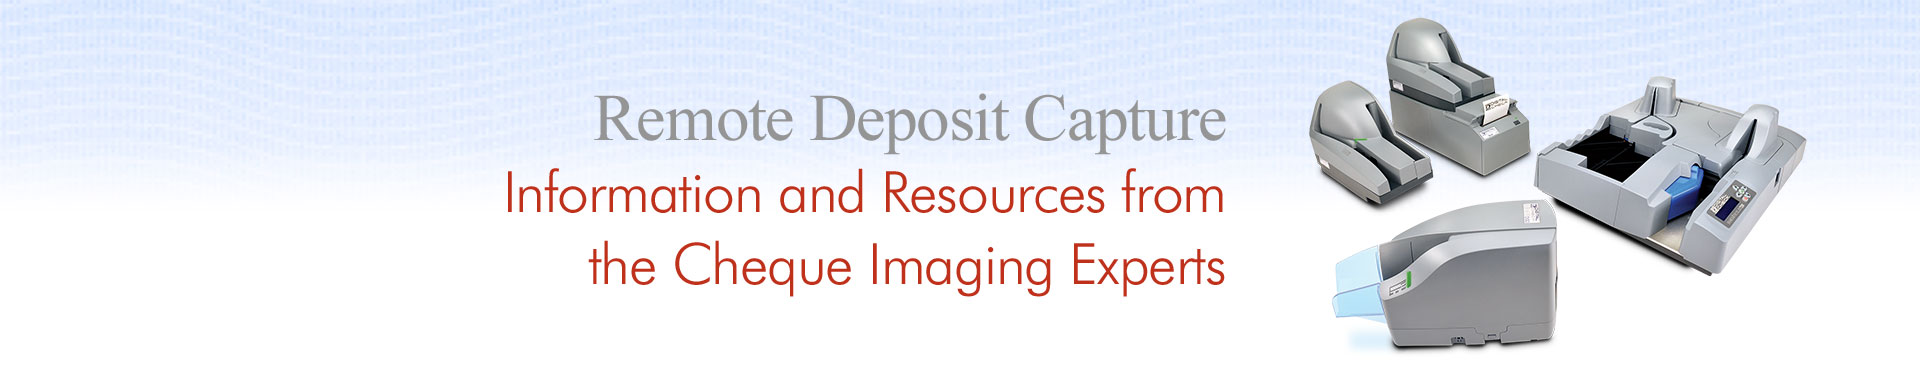 Remote Deposit Capture Systems